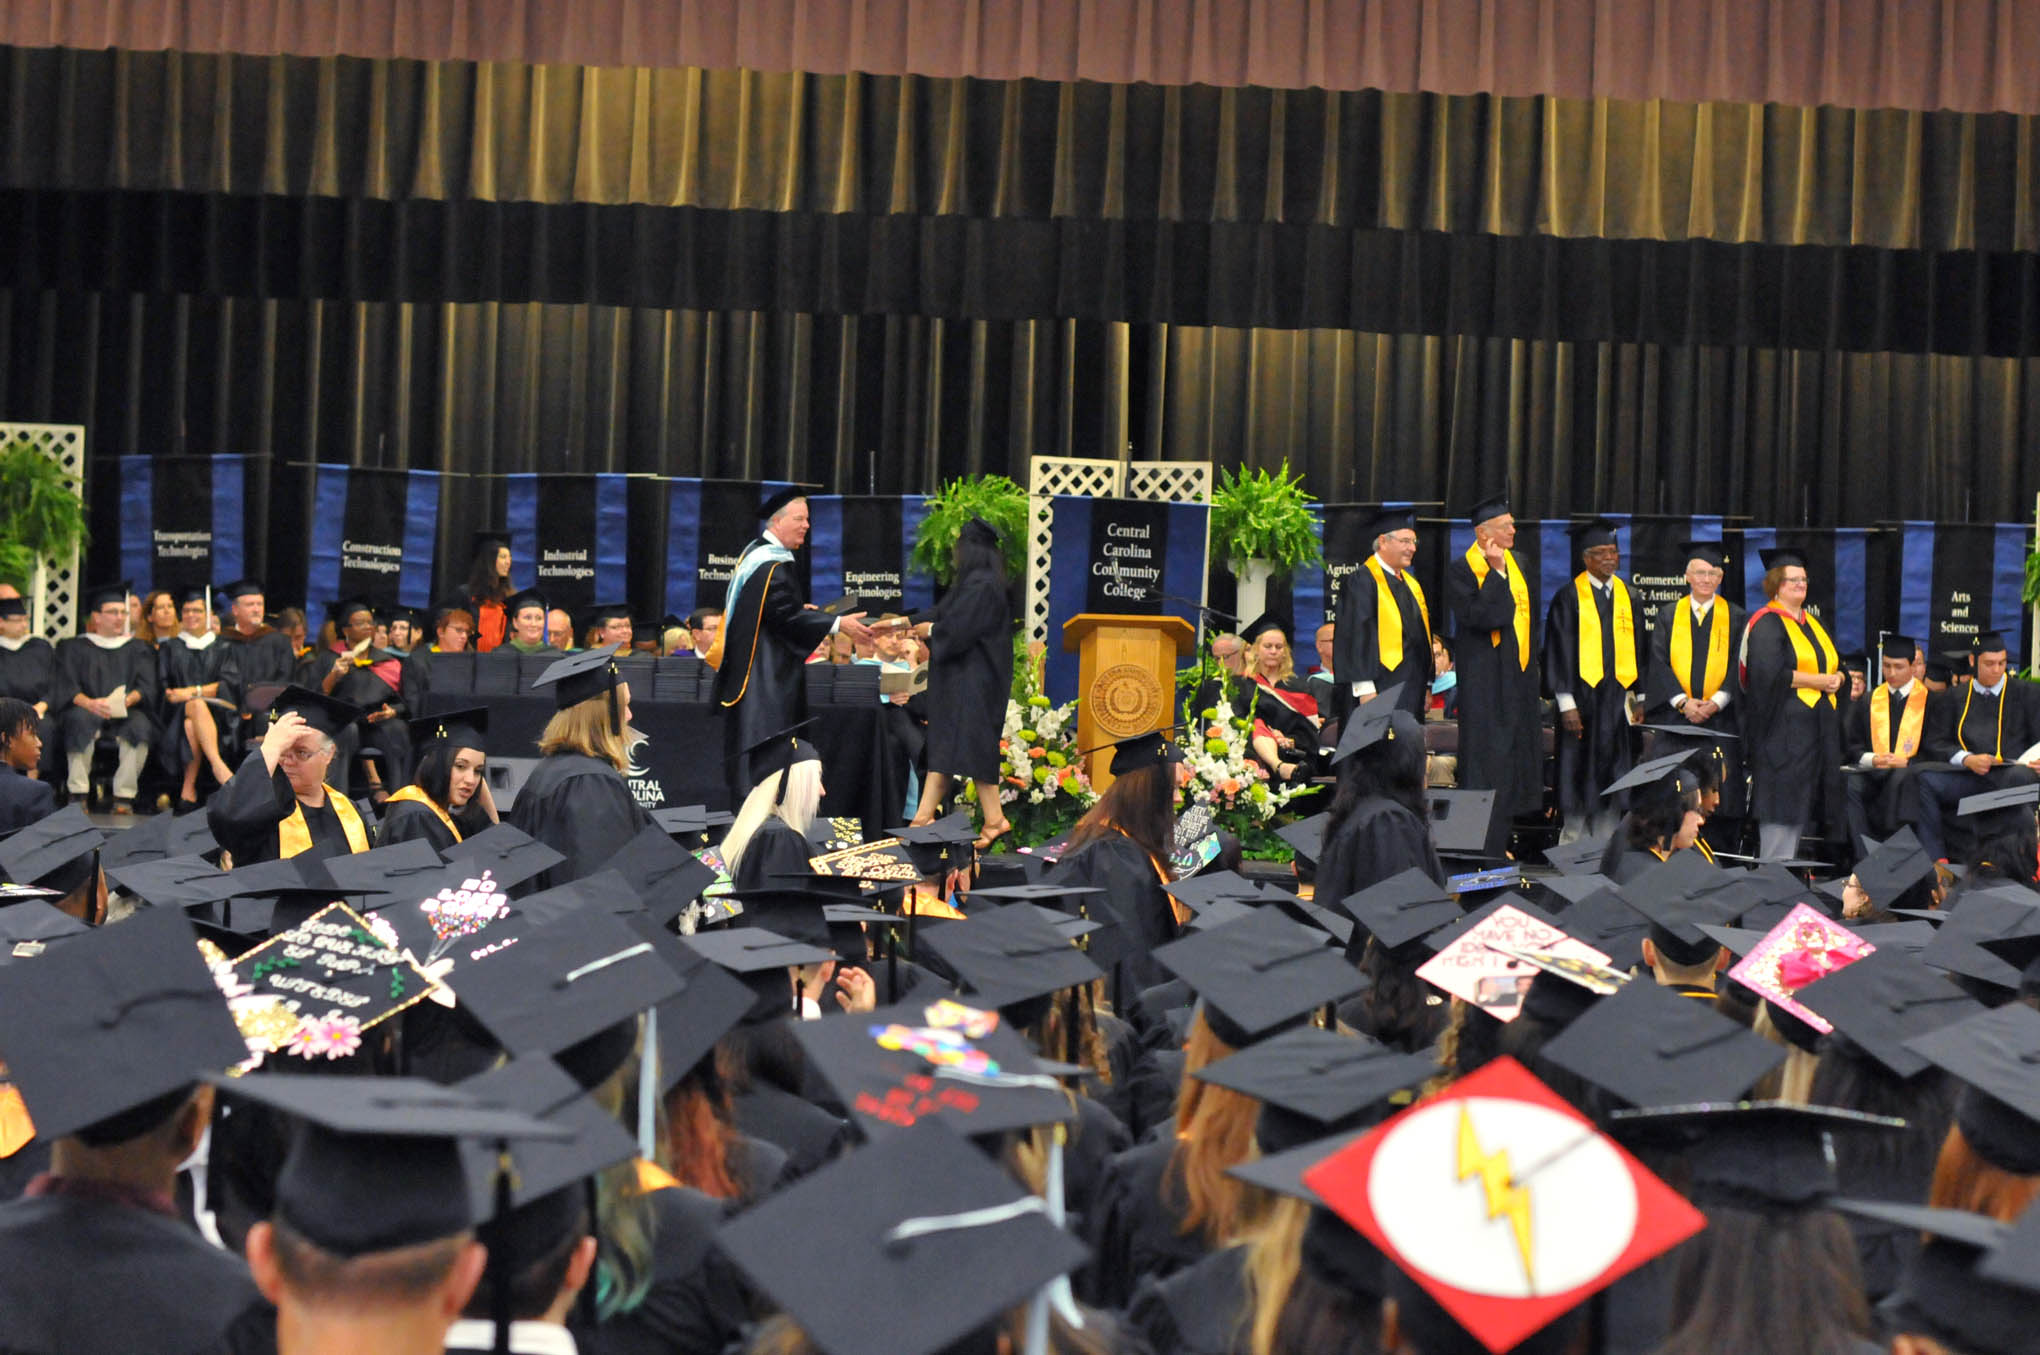 Click to enlarge,  There are approximately 826 members of the Class of 2017 at Central Carolina Community College. Commencement exercises were held on May 11 at the Dennis A. Wicker Civic Center in Sanford.